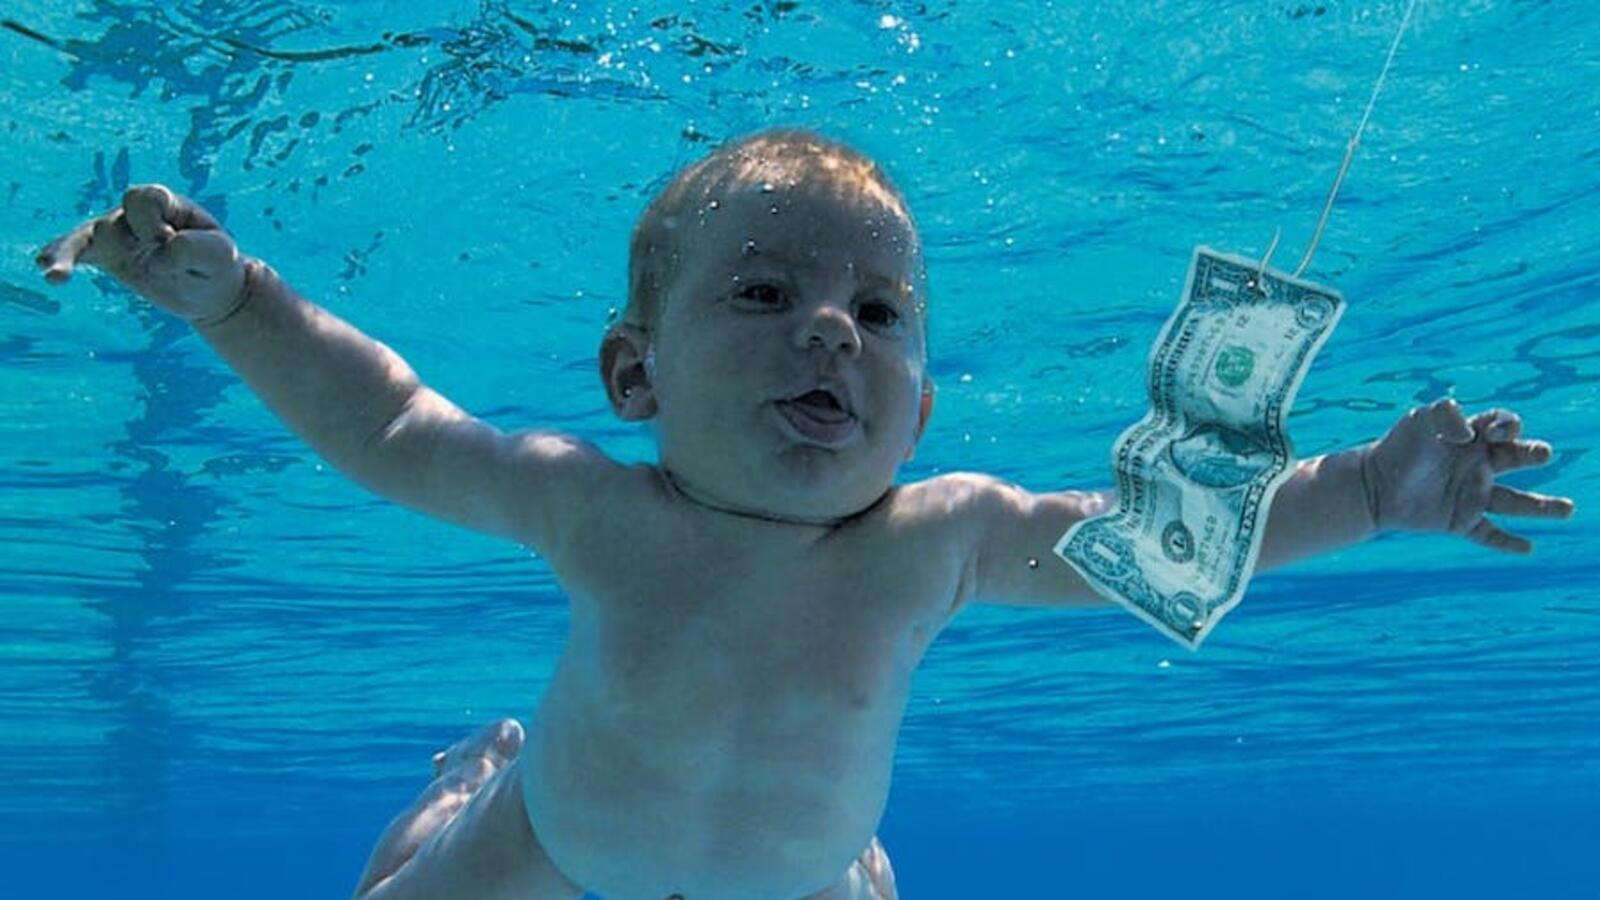 'Nevermind' Baby Wants Naked Image Removed From 30th Anniversary Reissue